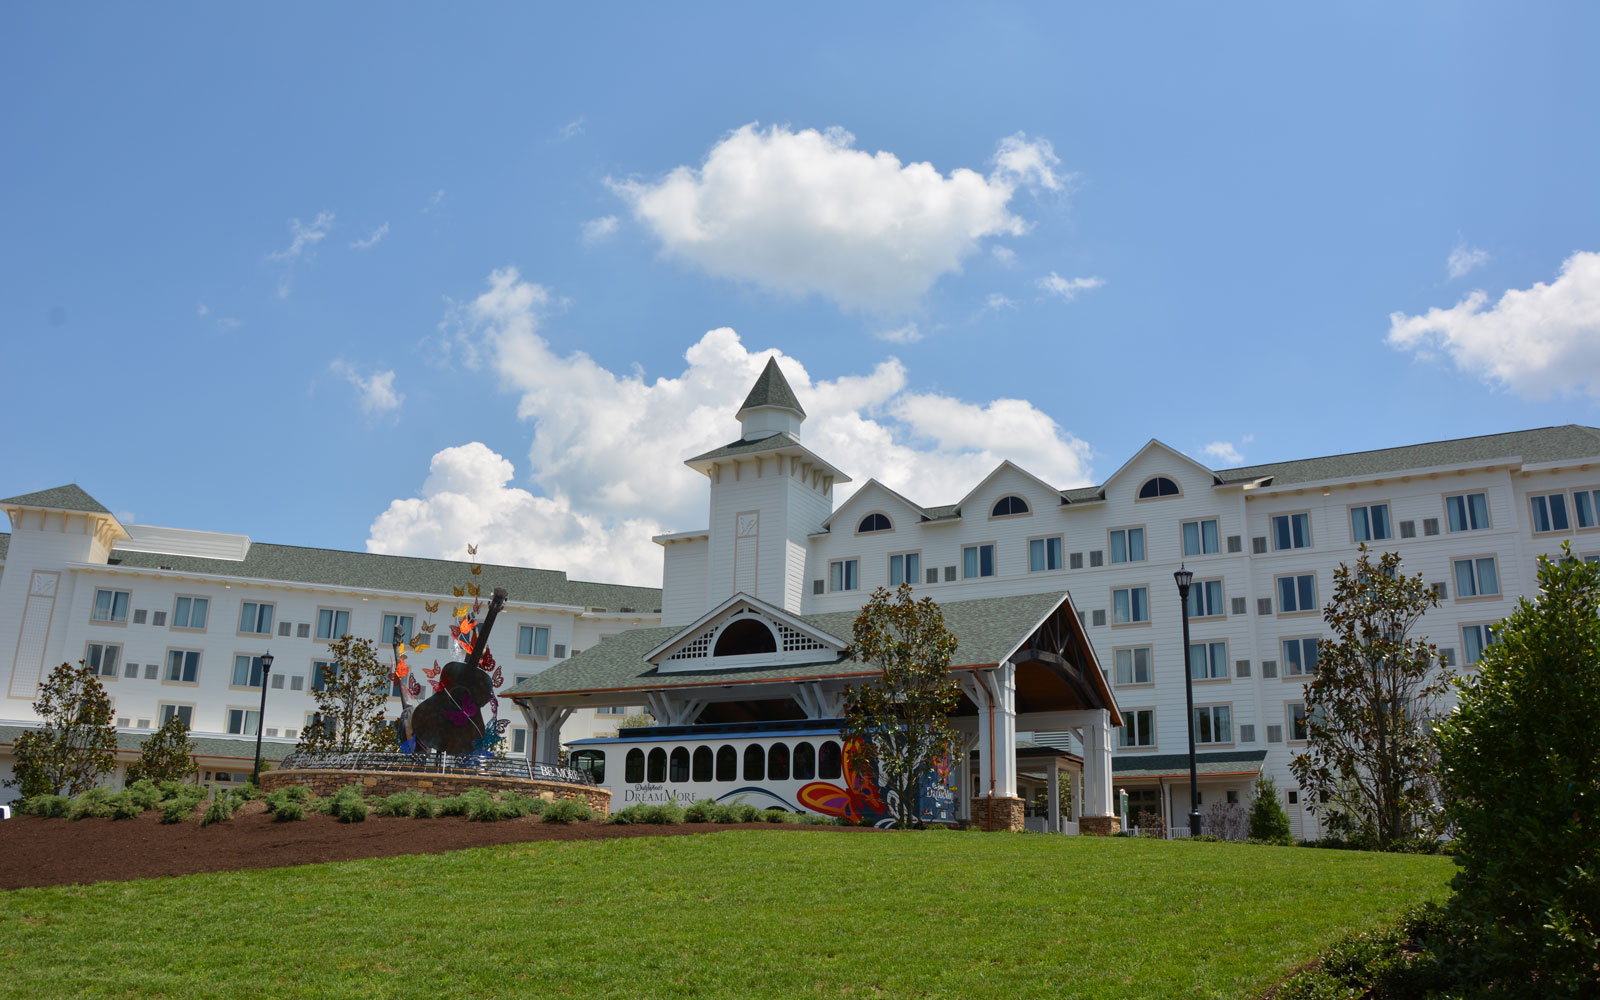 Dolly Parton Opens DreamMore Resort